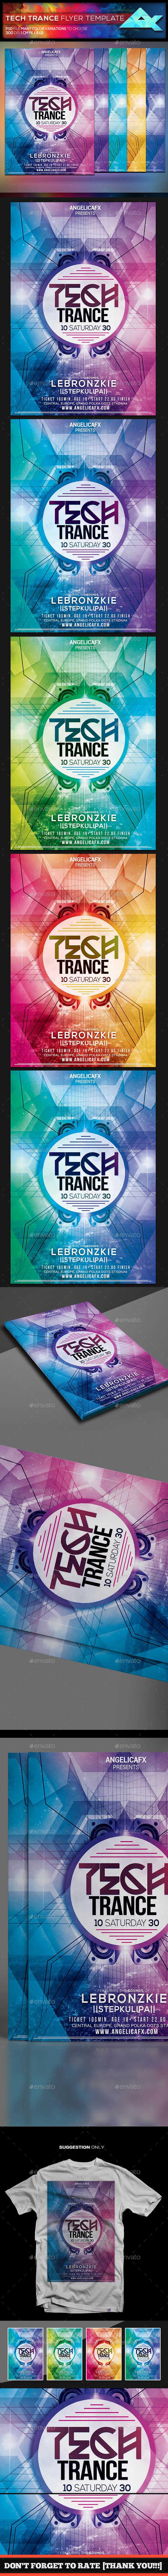 Tech Trance Flyer Template - Flyers Print Templates